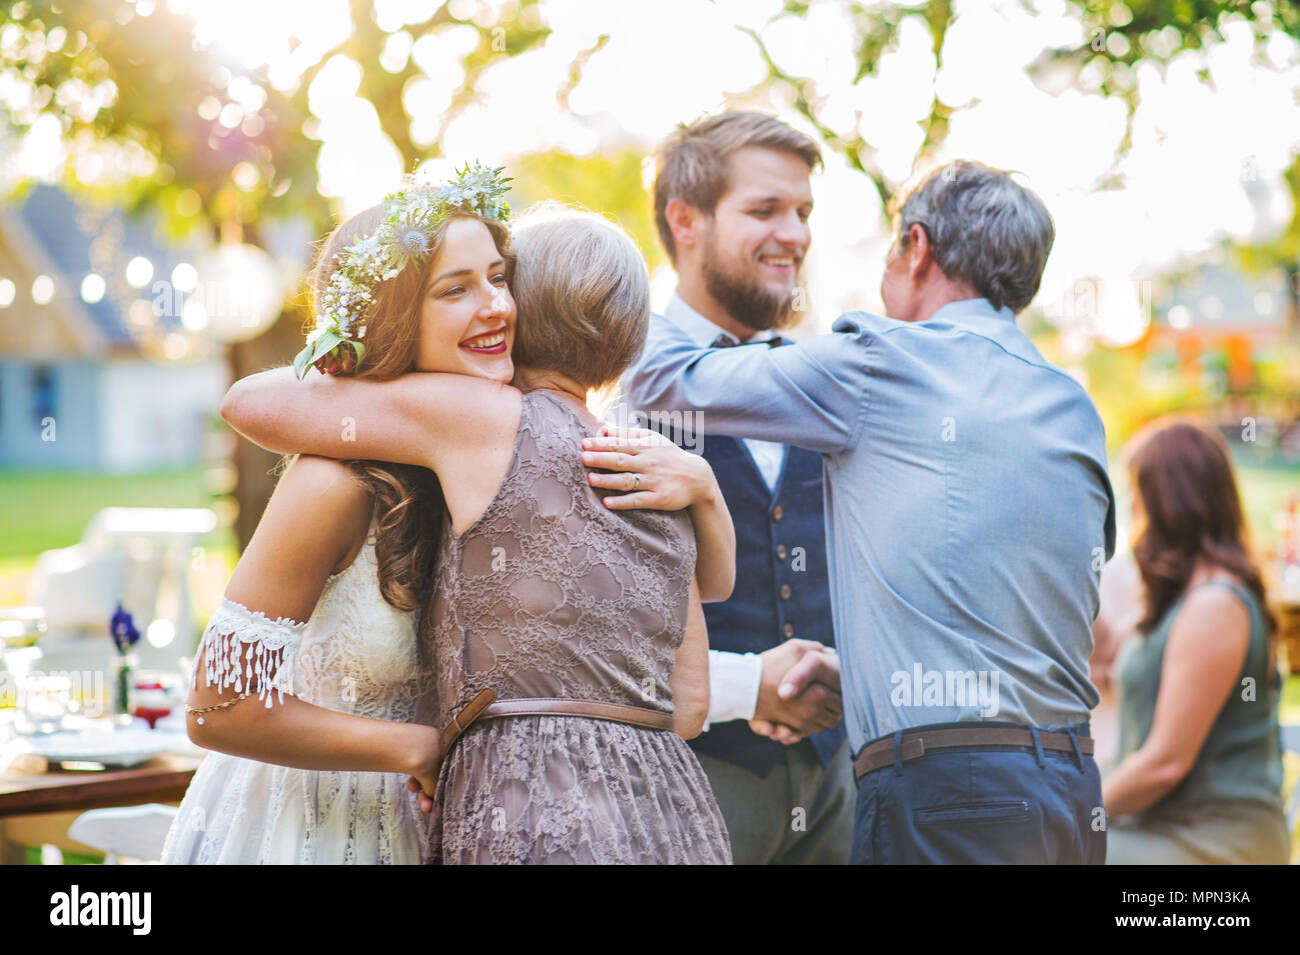 Guests congratulating bride and groom at wedding reception outside in the backyard. - Stock Image